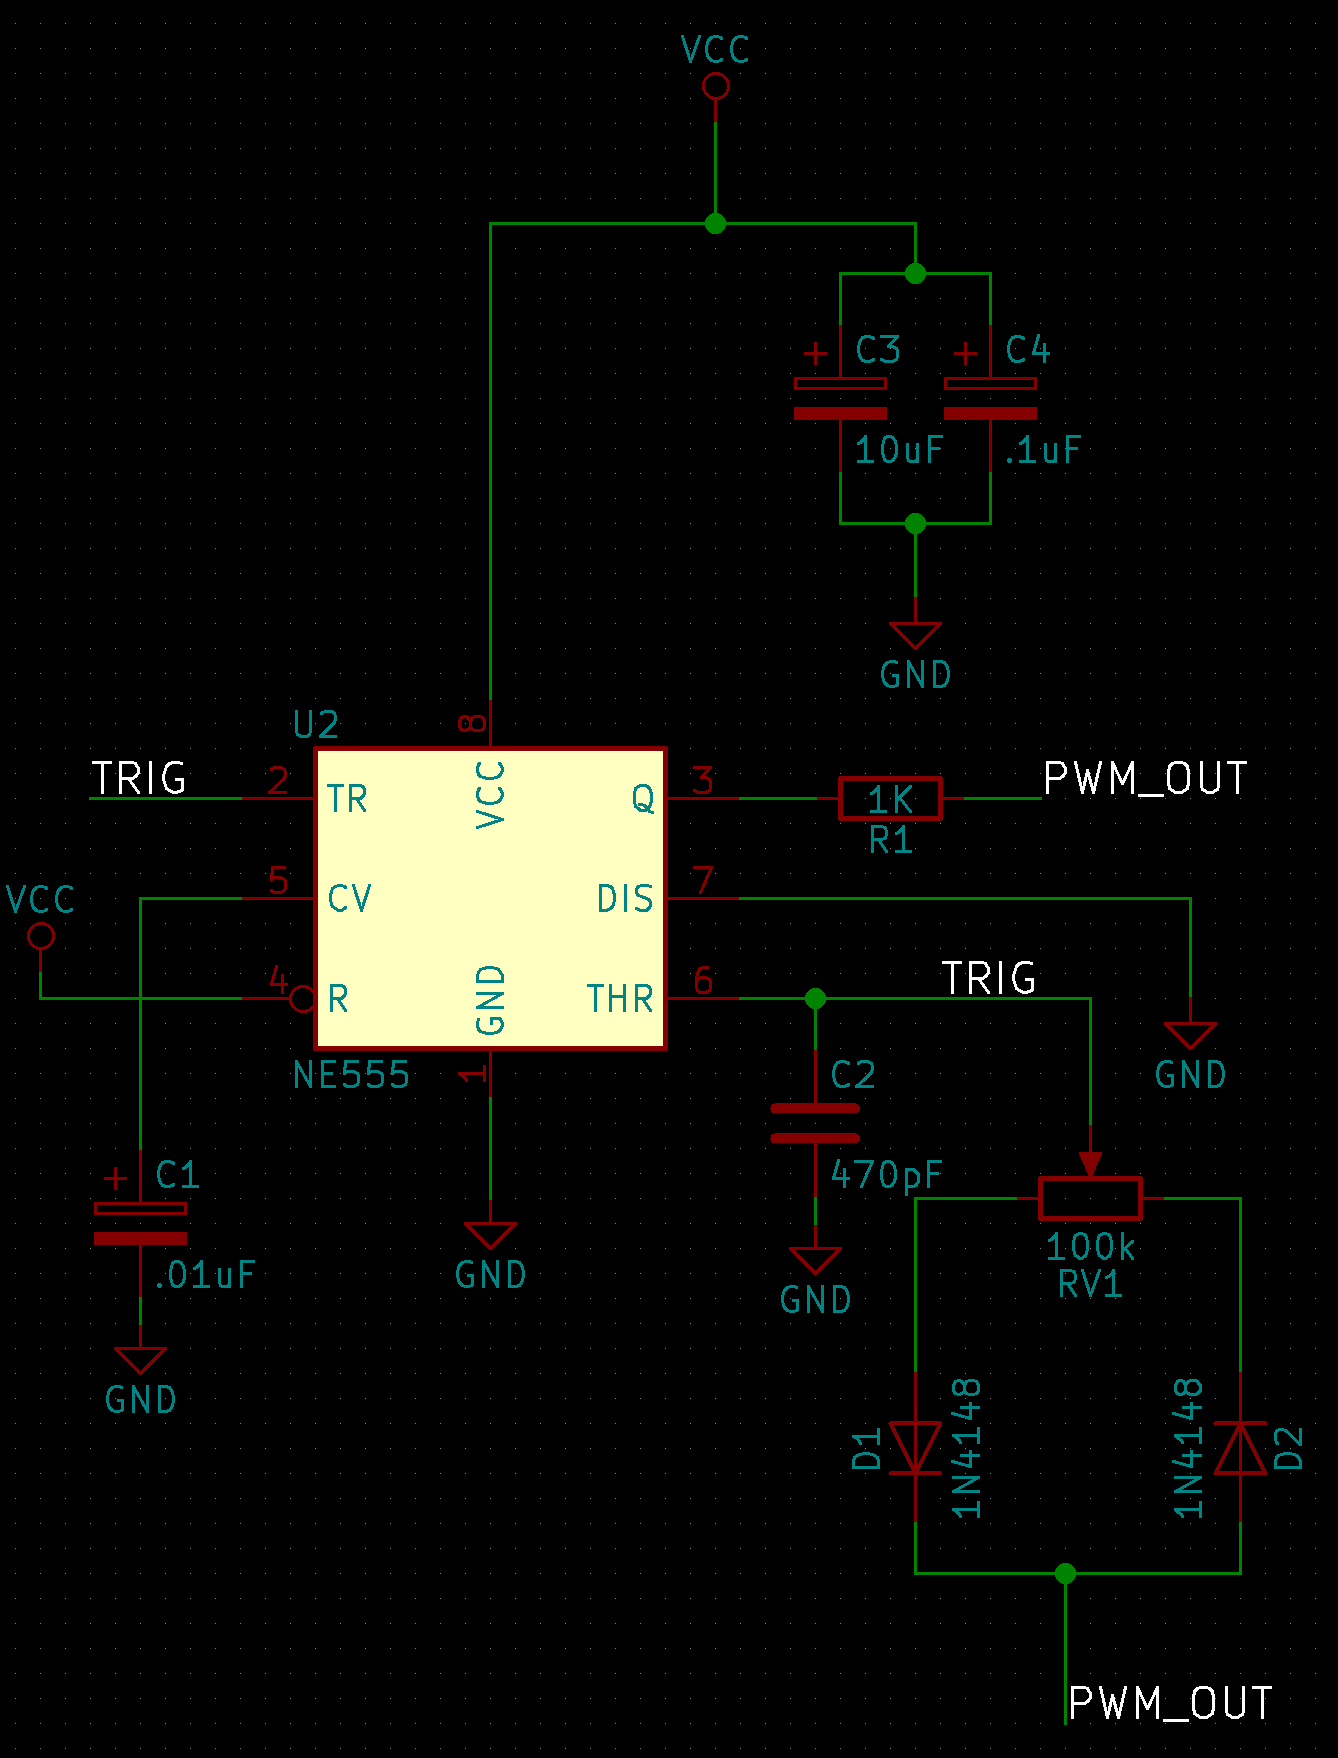 hight resolution of  pwm fans i figured out my design constraints for the oscillator the circuit needed to have an output frequency of 25 khz and operate at 5 volts